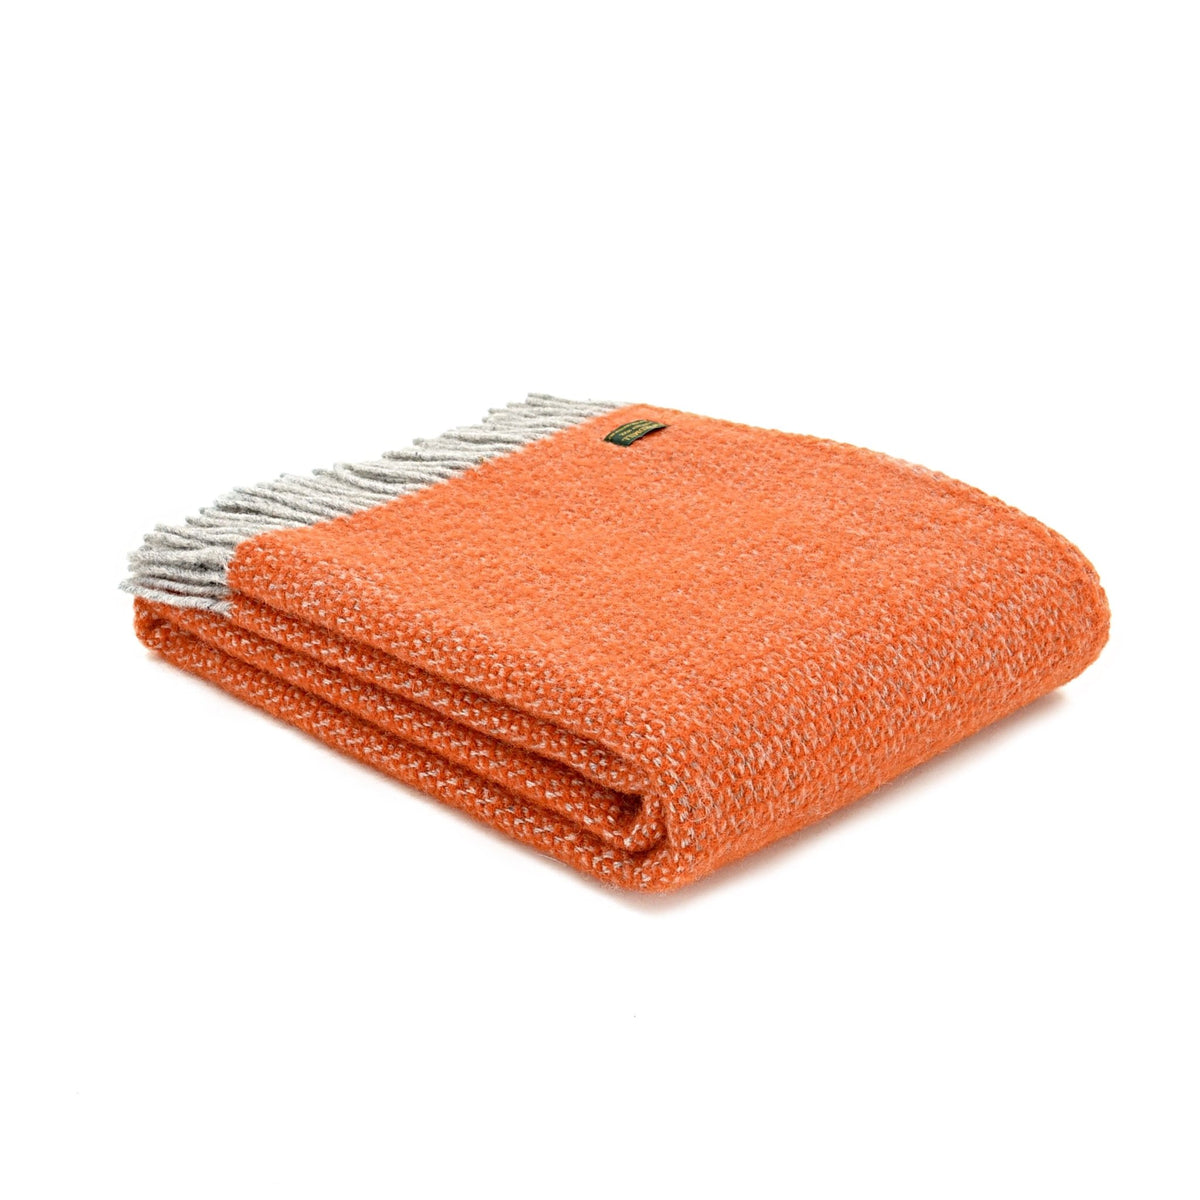 Tweedmill Illusion Pumpkin pure wool throw - Urban Wool